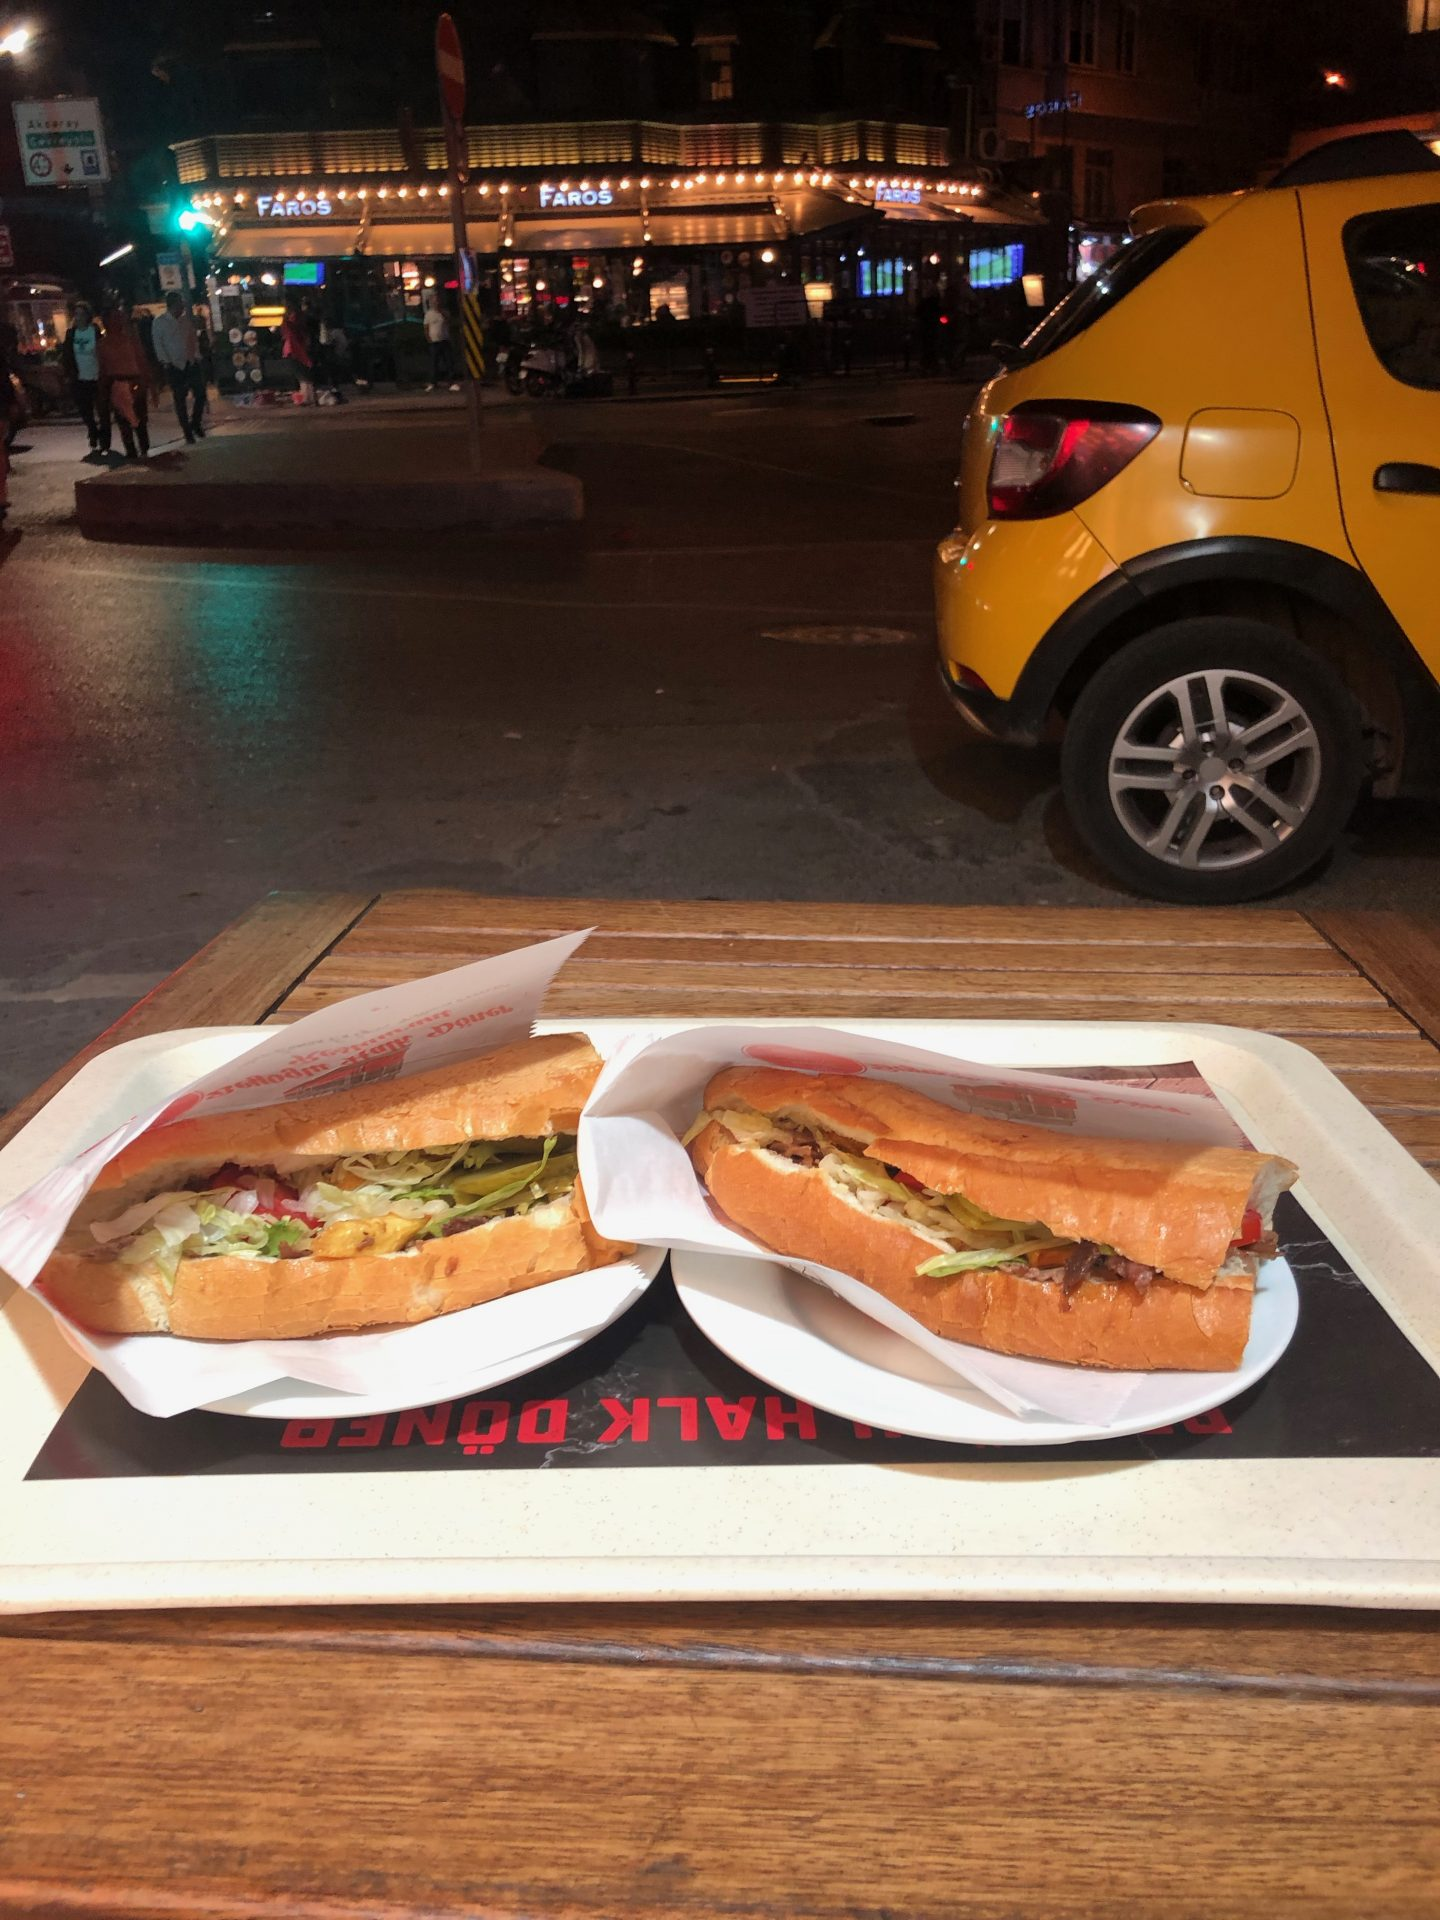 48 hours weekend in Istanbul: Two kebabs on a tray on a wooden table shot at night, with two yellow taxis blurred out in the background